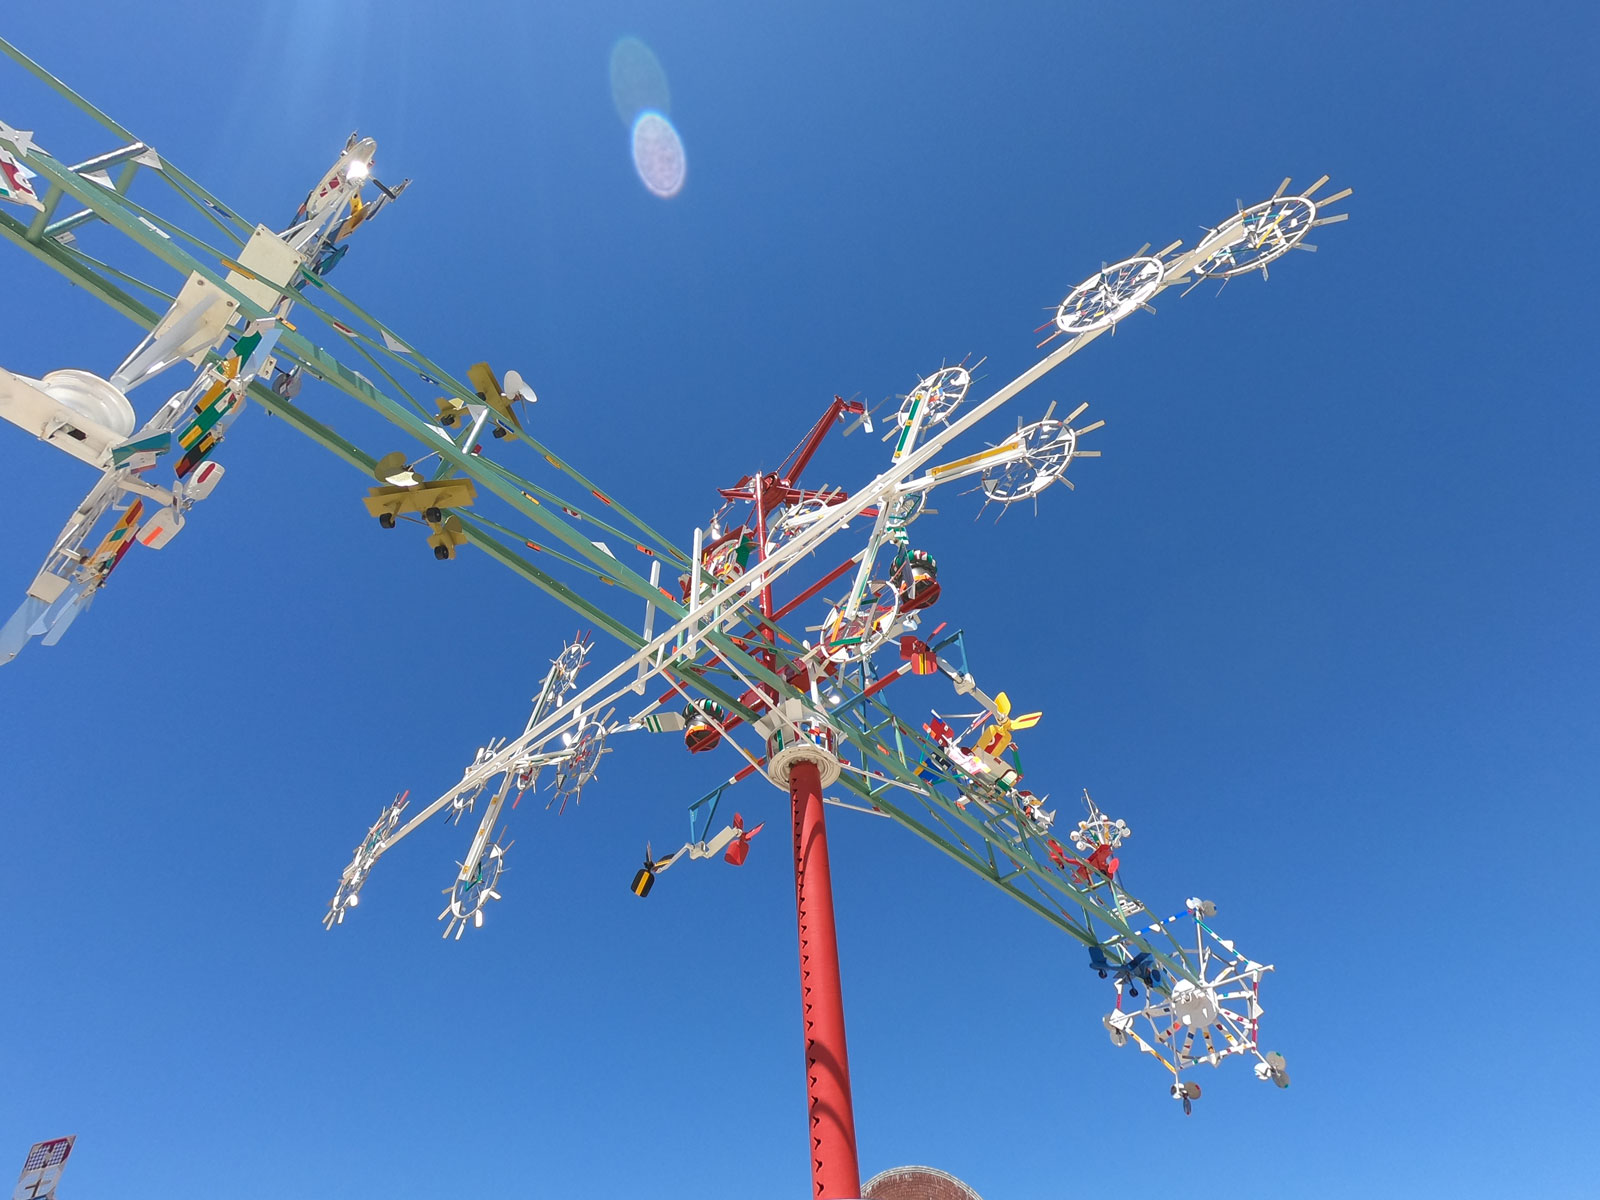 Whirligig with spinning fans in Vollis Simpson Whirligig Park, Wilson, North Carolina